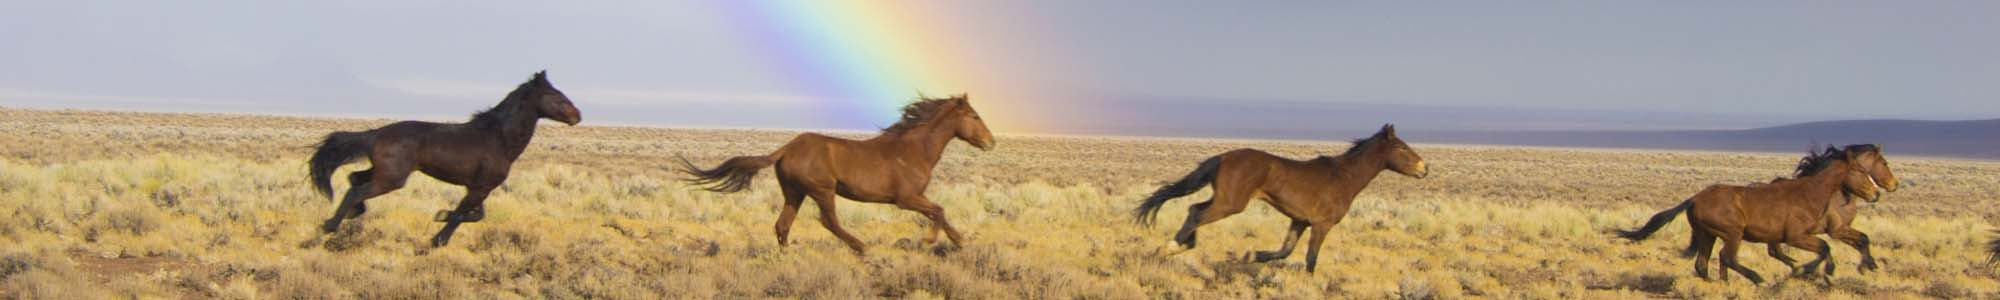 Horses running across a field with a rainbow in background